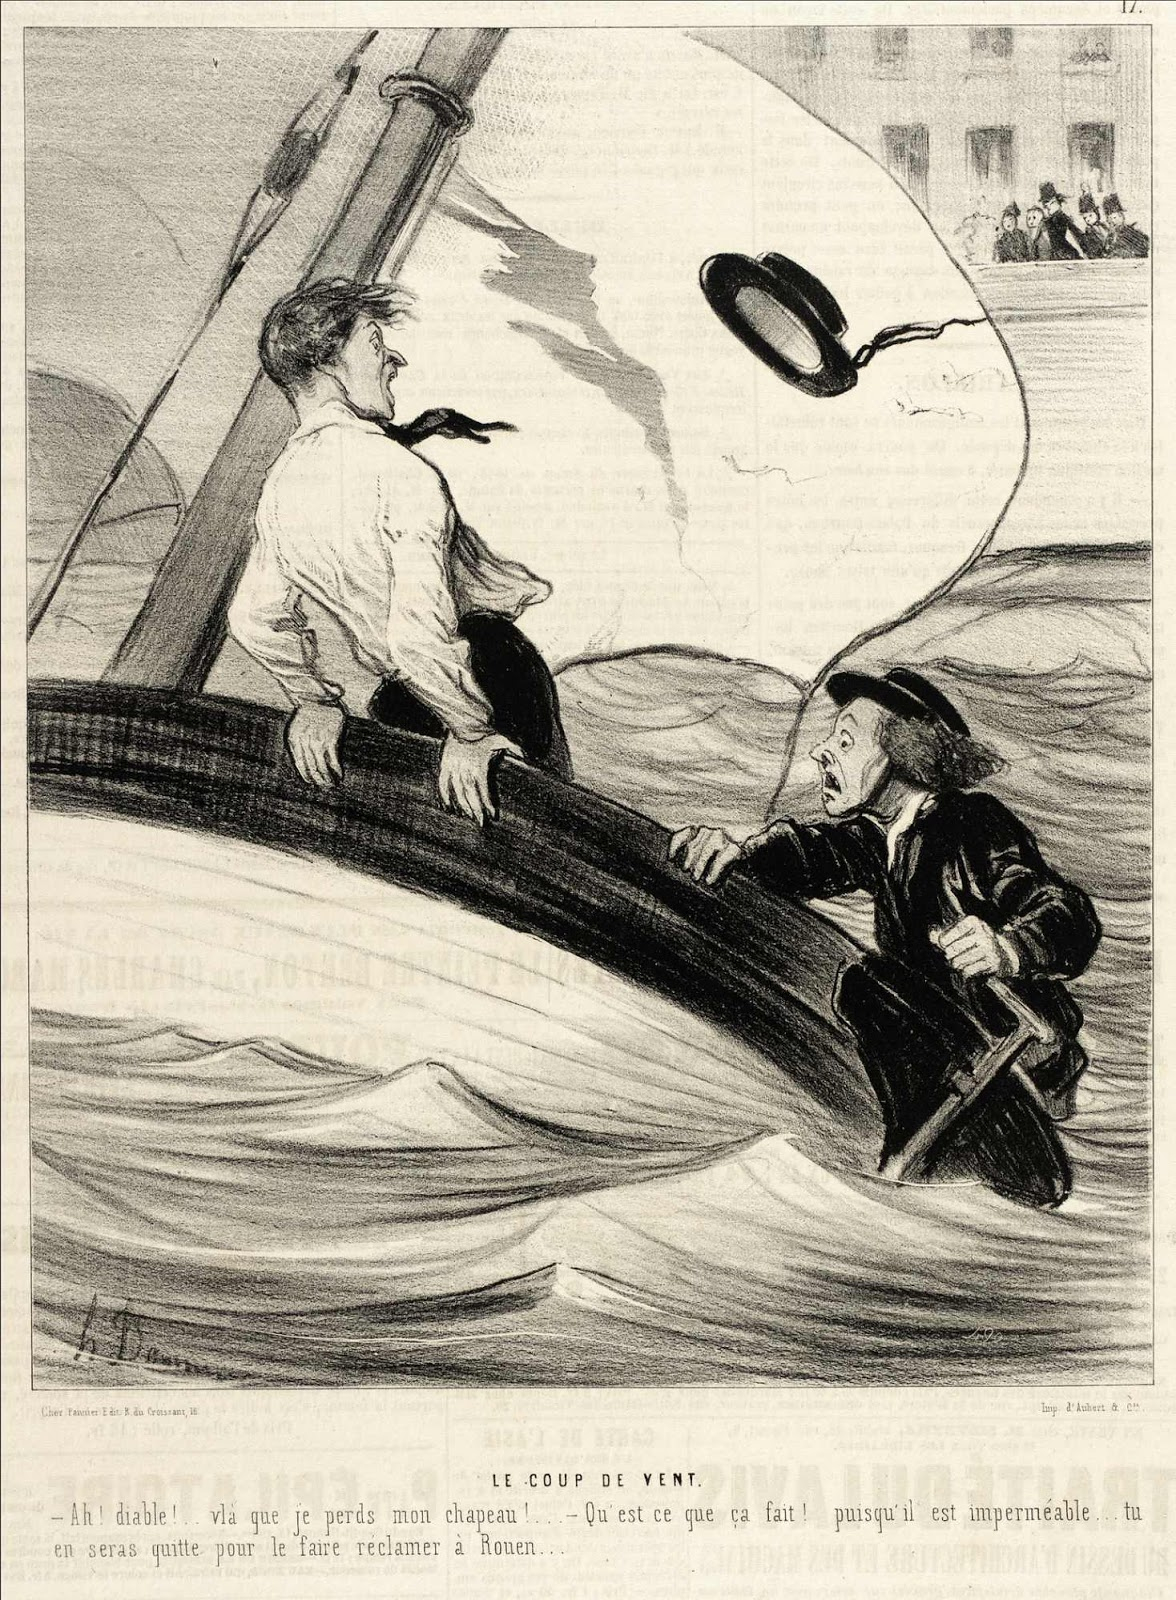 Spencer Alley: Cartoons And Caricatures By Honoré Daumier serapportantà Le Charivari